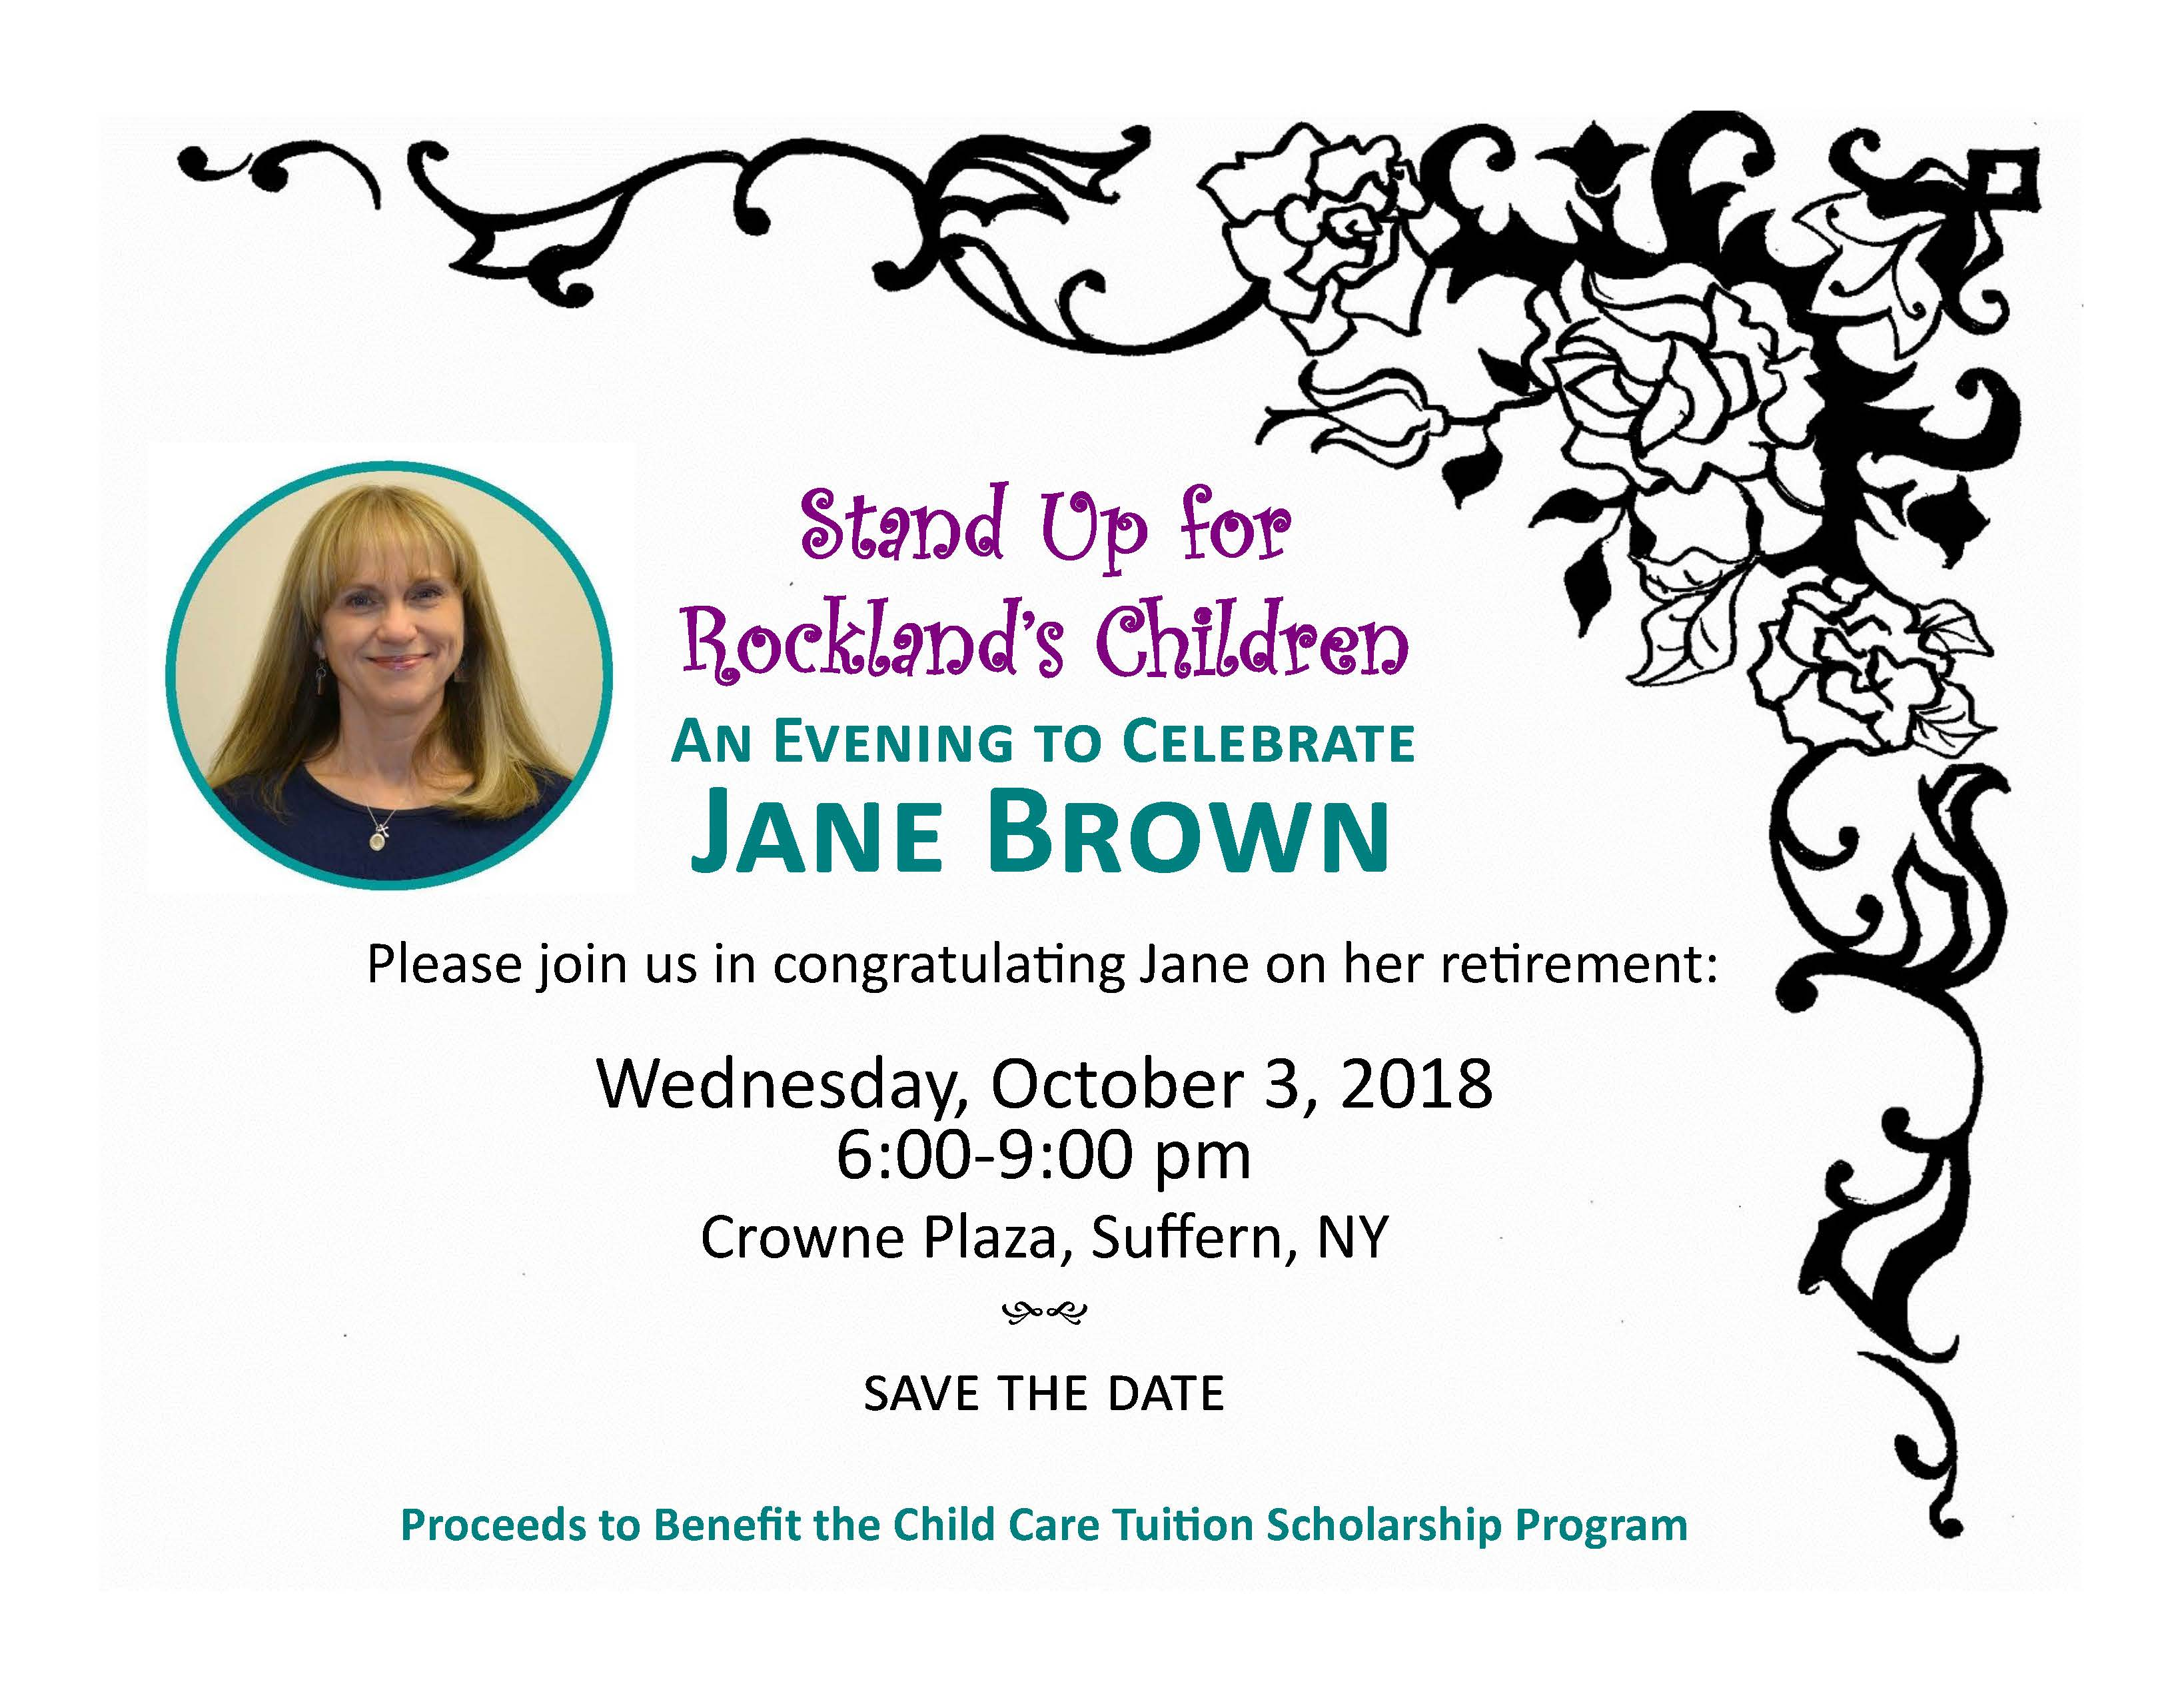 Jane Brown's Retirement Event